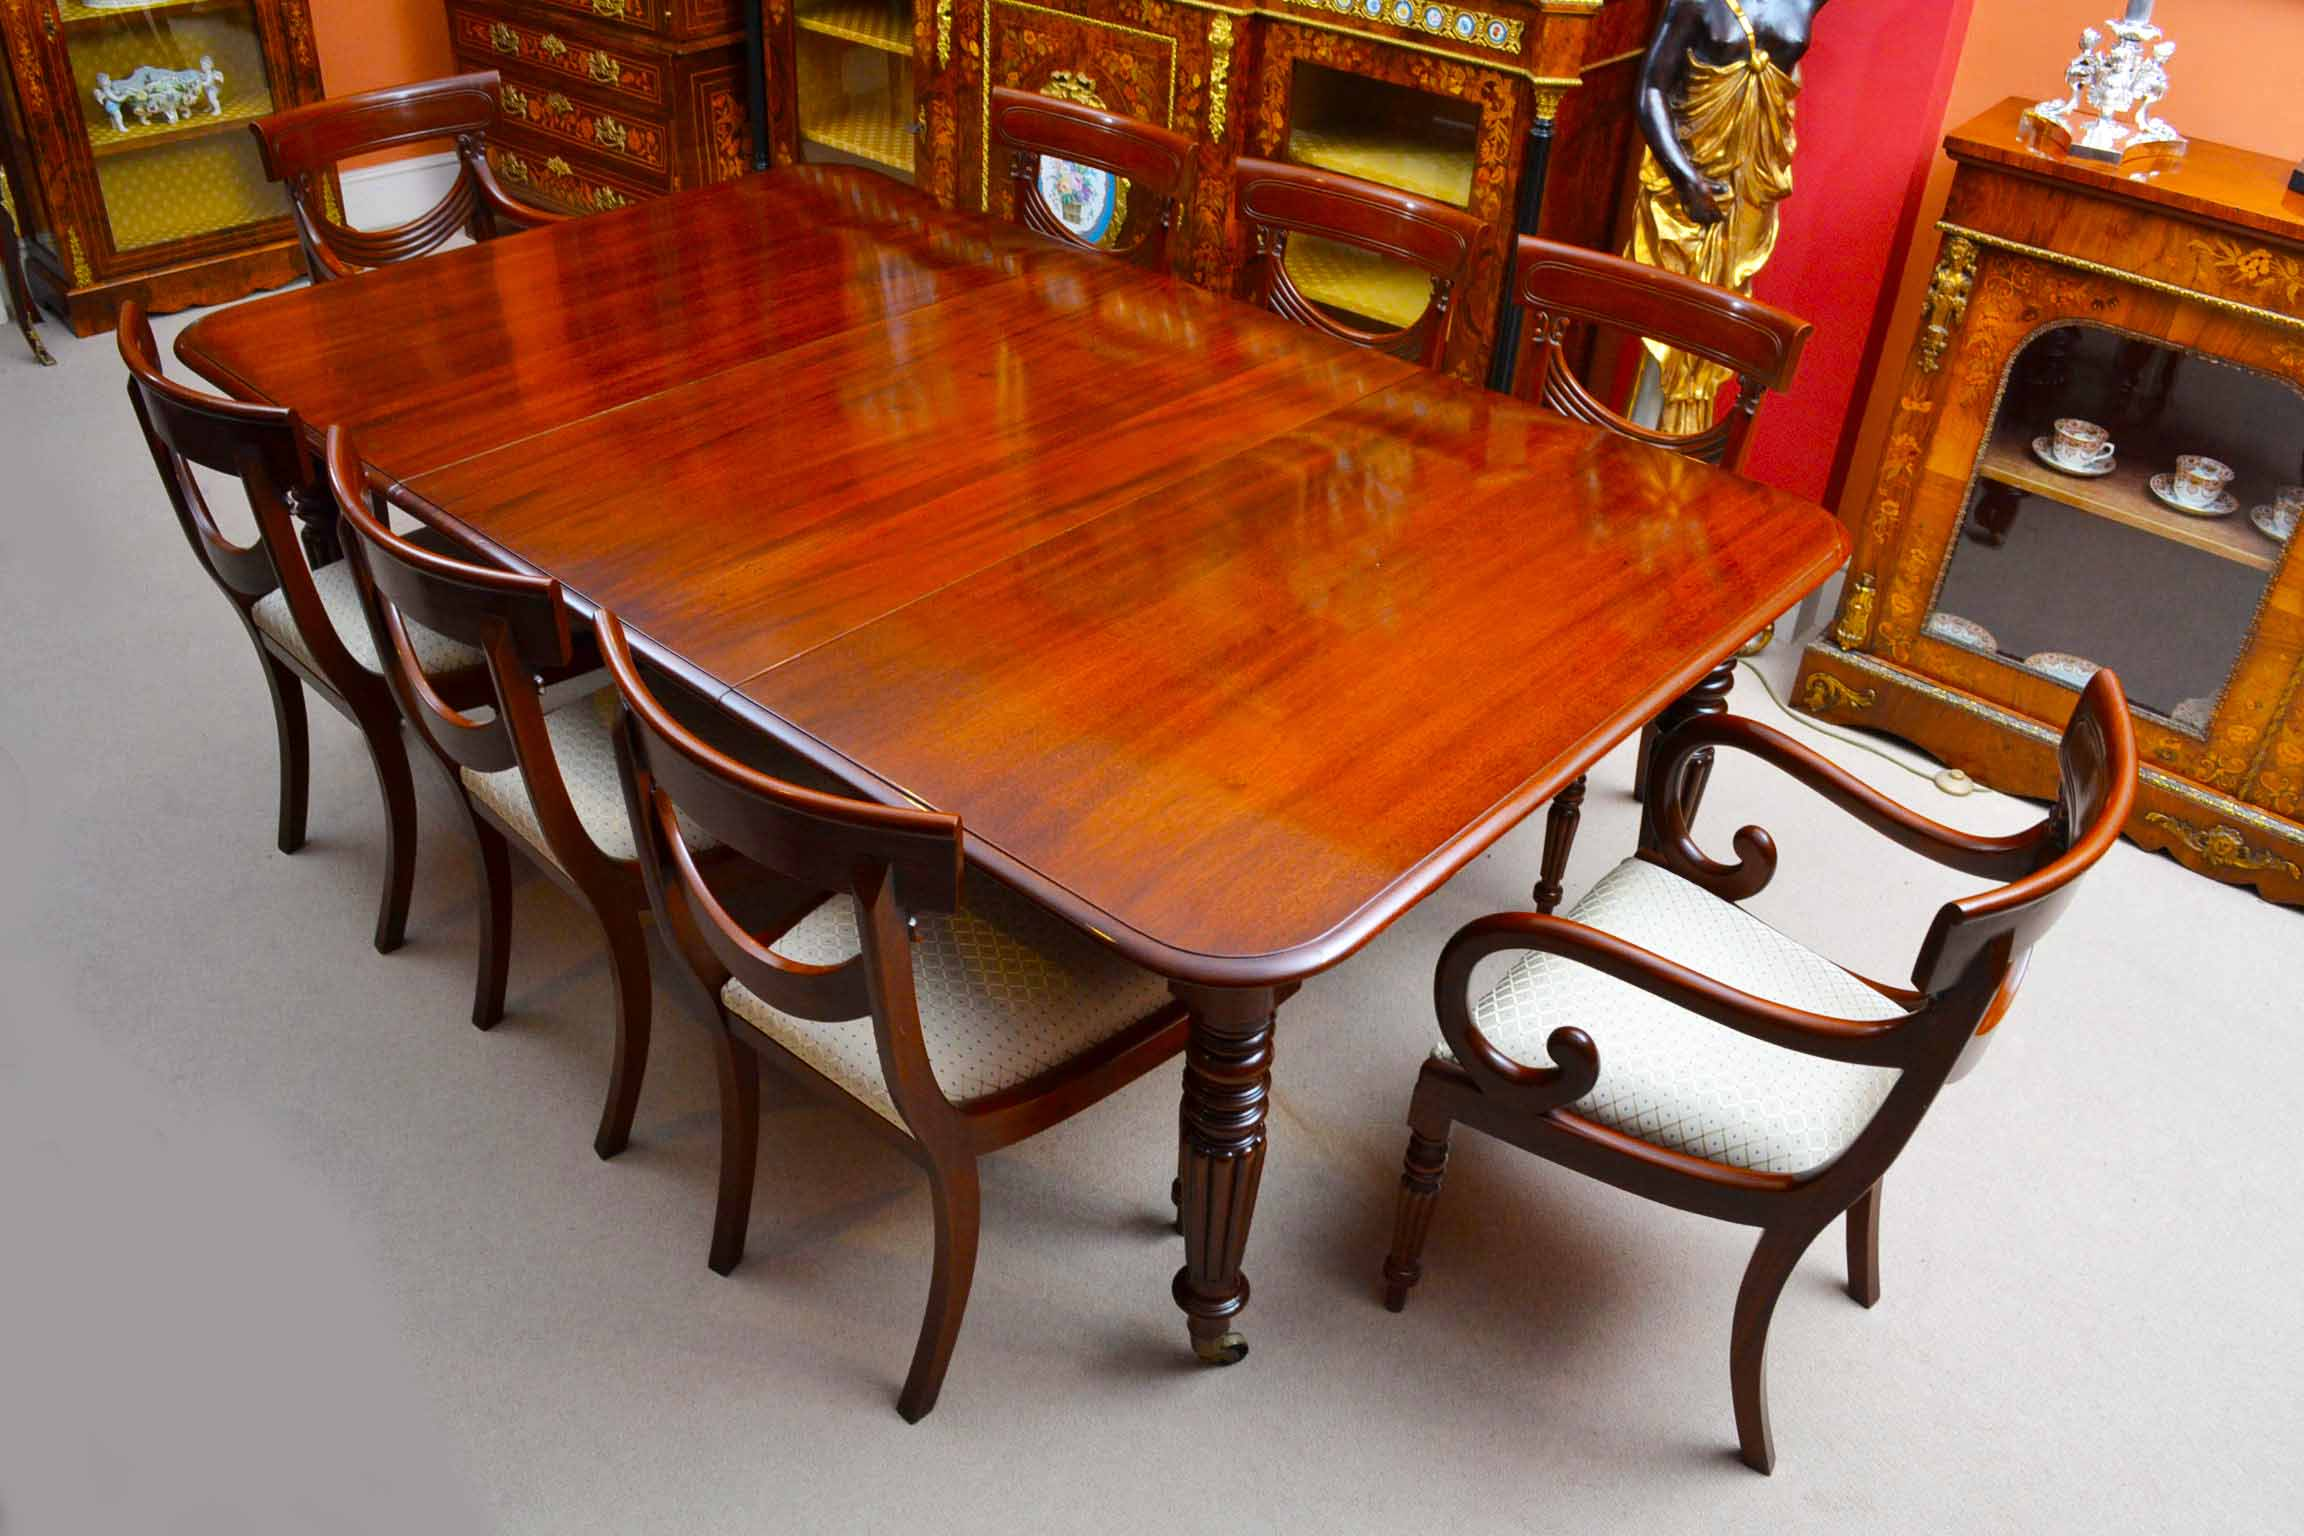 antique regency dining table 8 vintage chairs